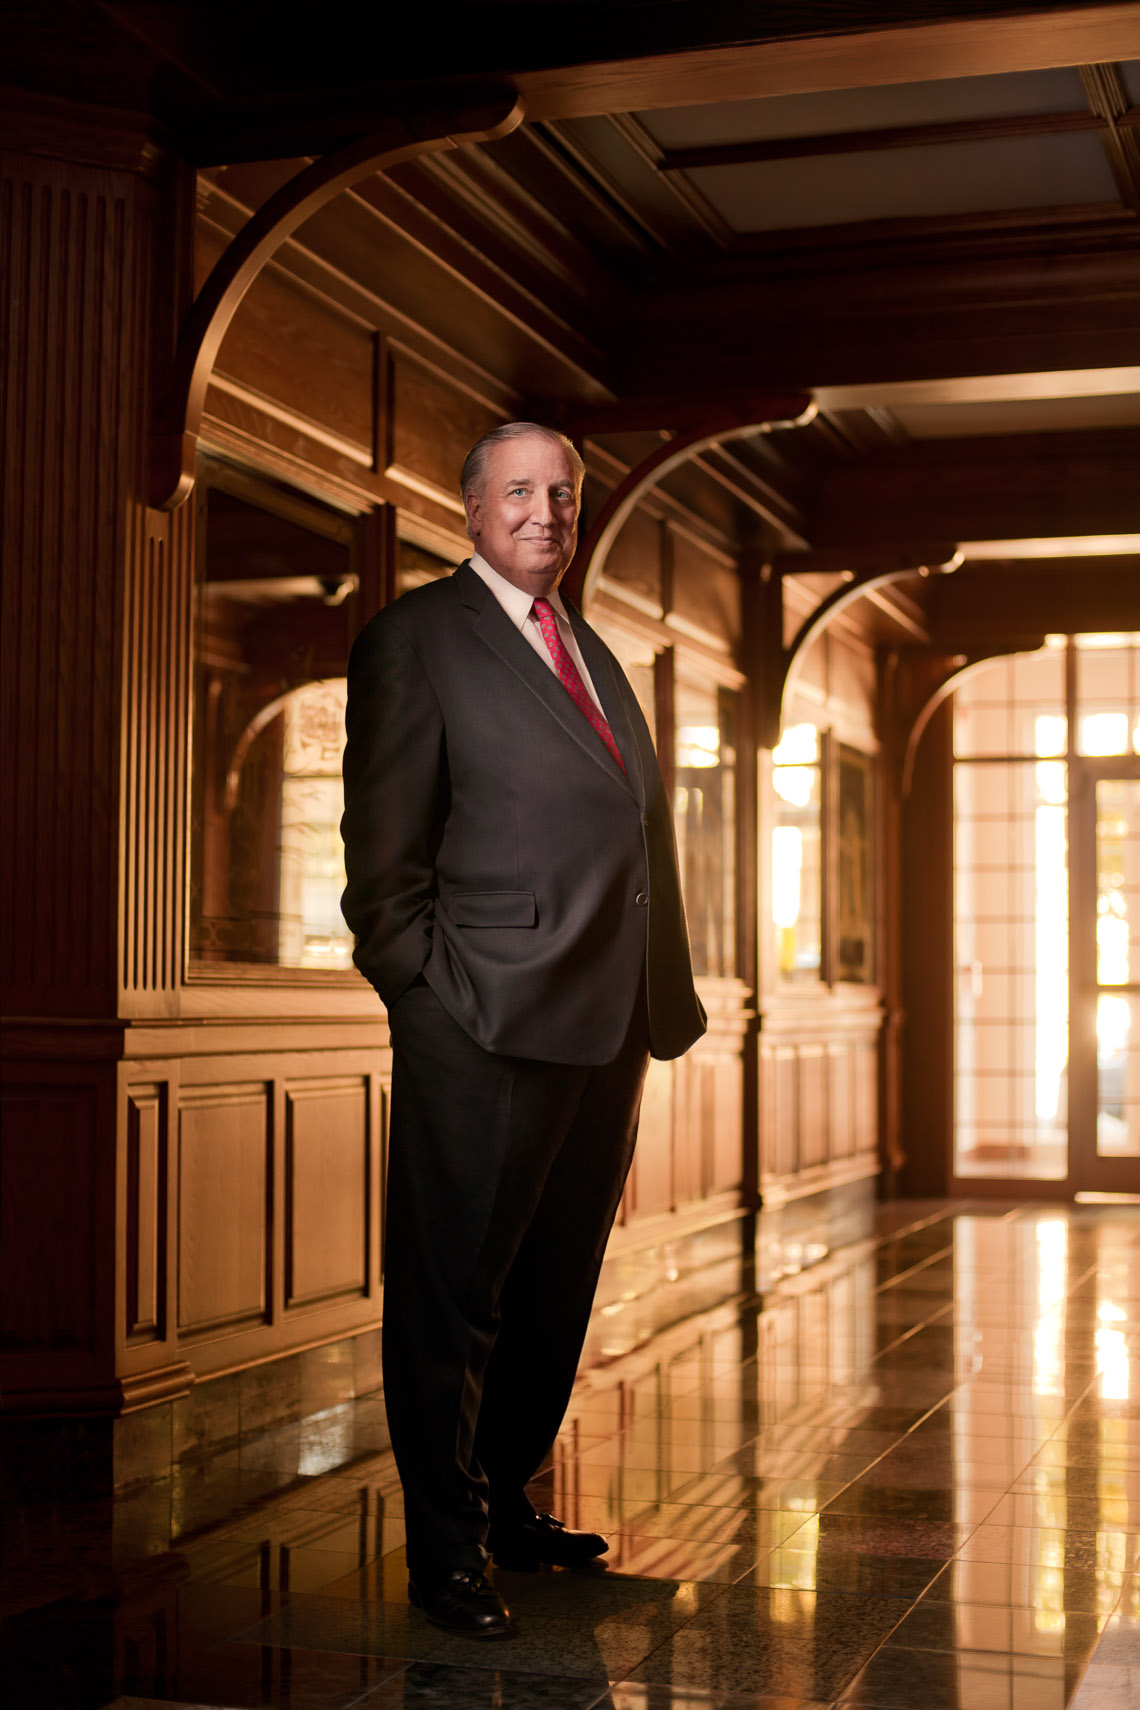 corporate-portrait-photography-business-philadelphia-andrew-sordoni-221